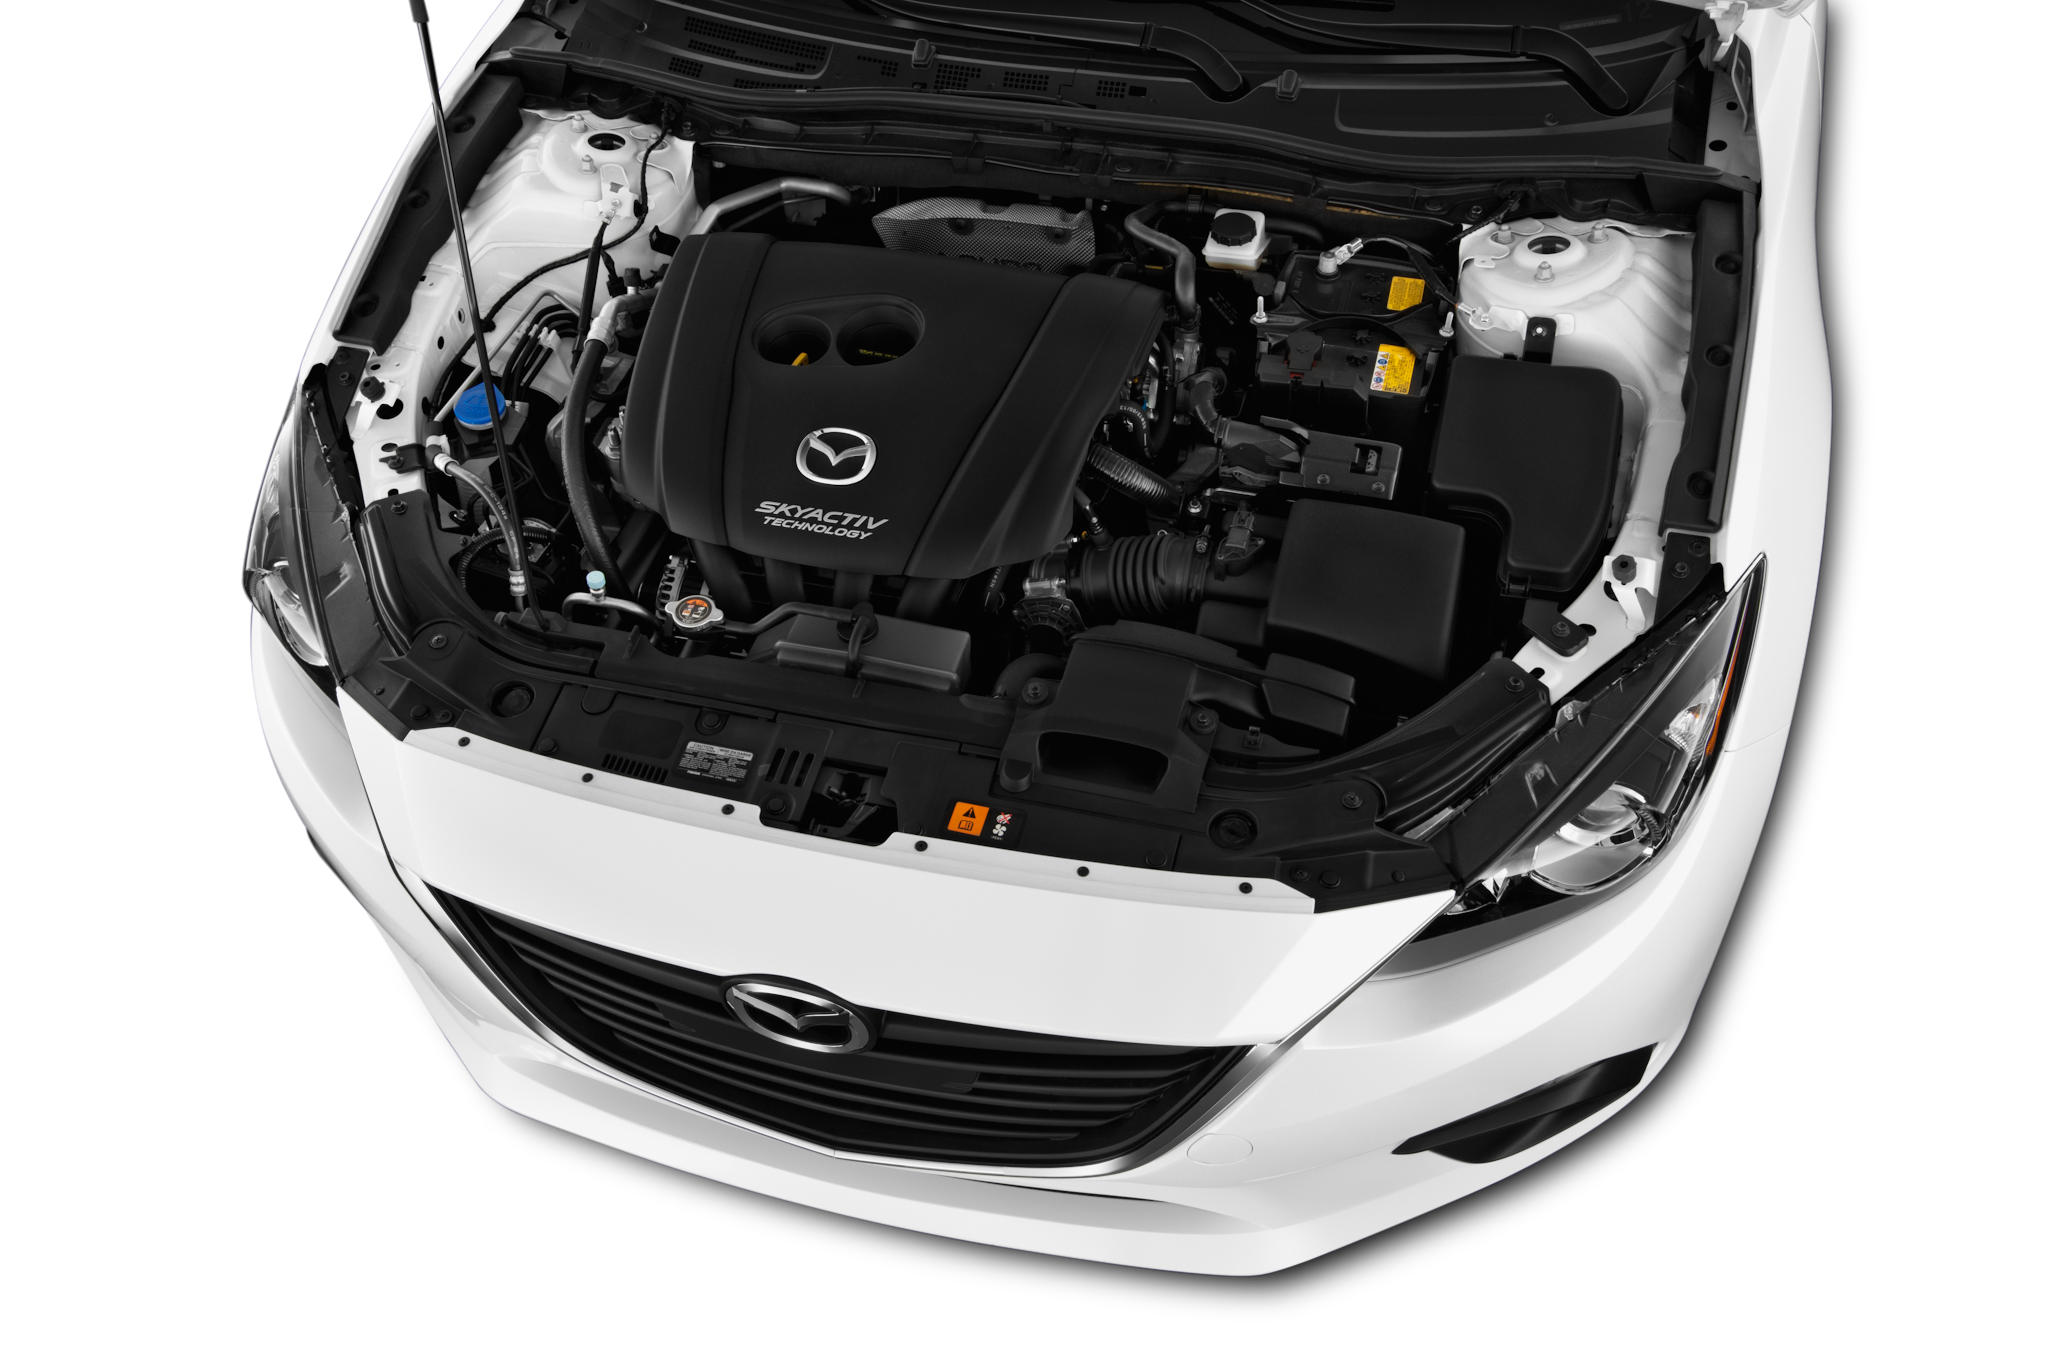 2015 mazda 3 updated, gains manual transmission for 2.5l ... chrysler 3 5l engine diagram 3 5l engine diagram of mazda #4